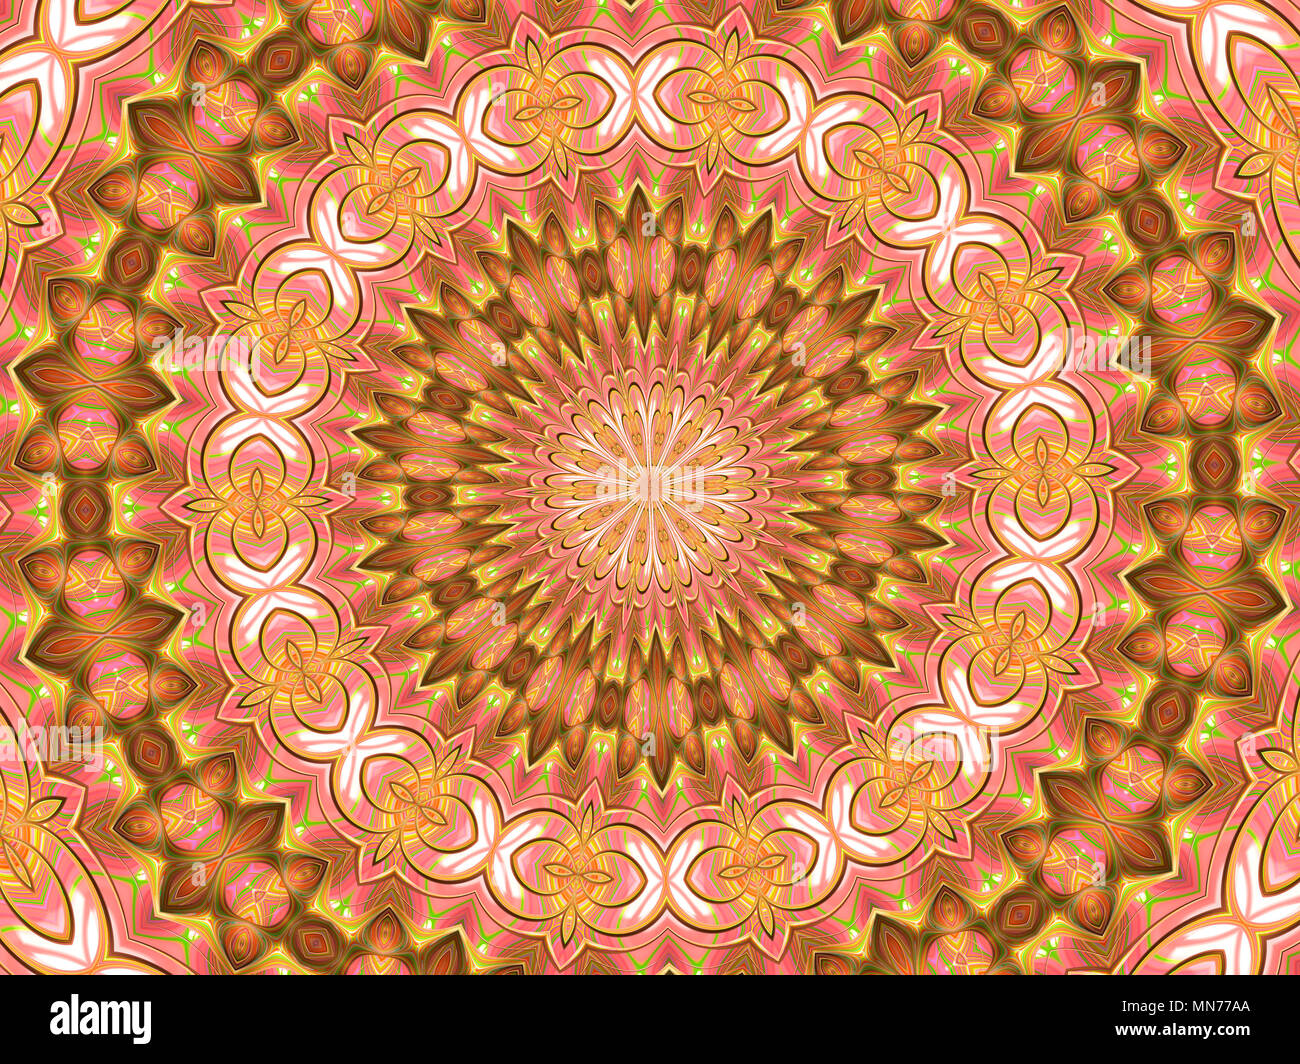 Kaleidoscope Star surrounded by unusual shapes - Stock Image